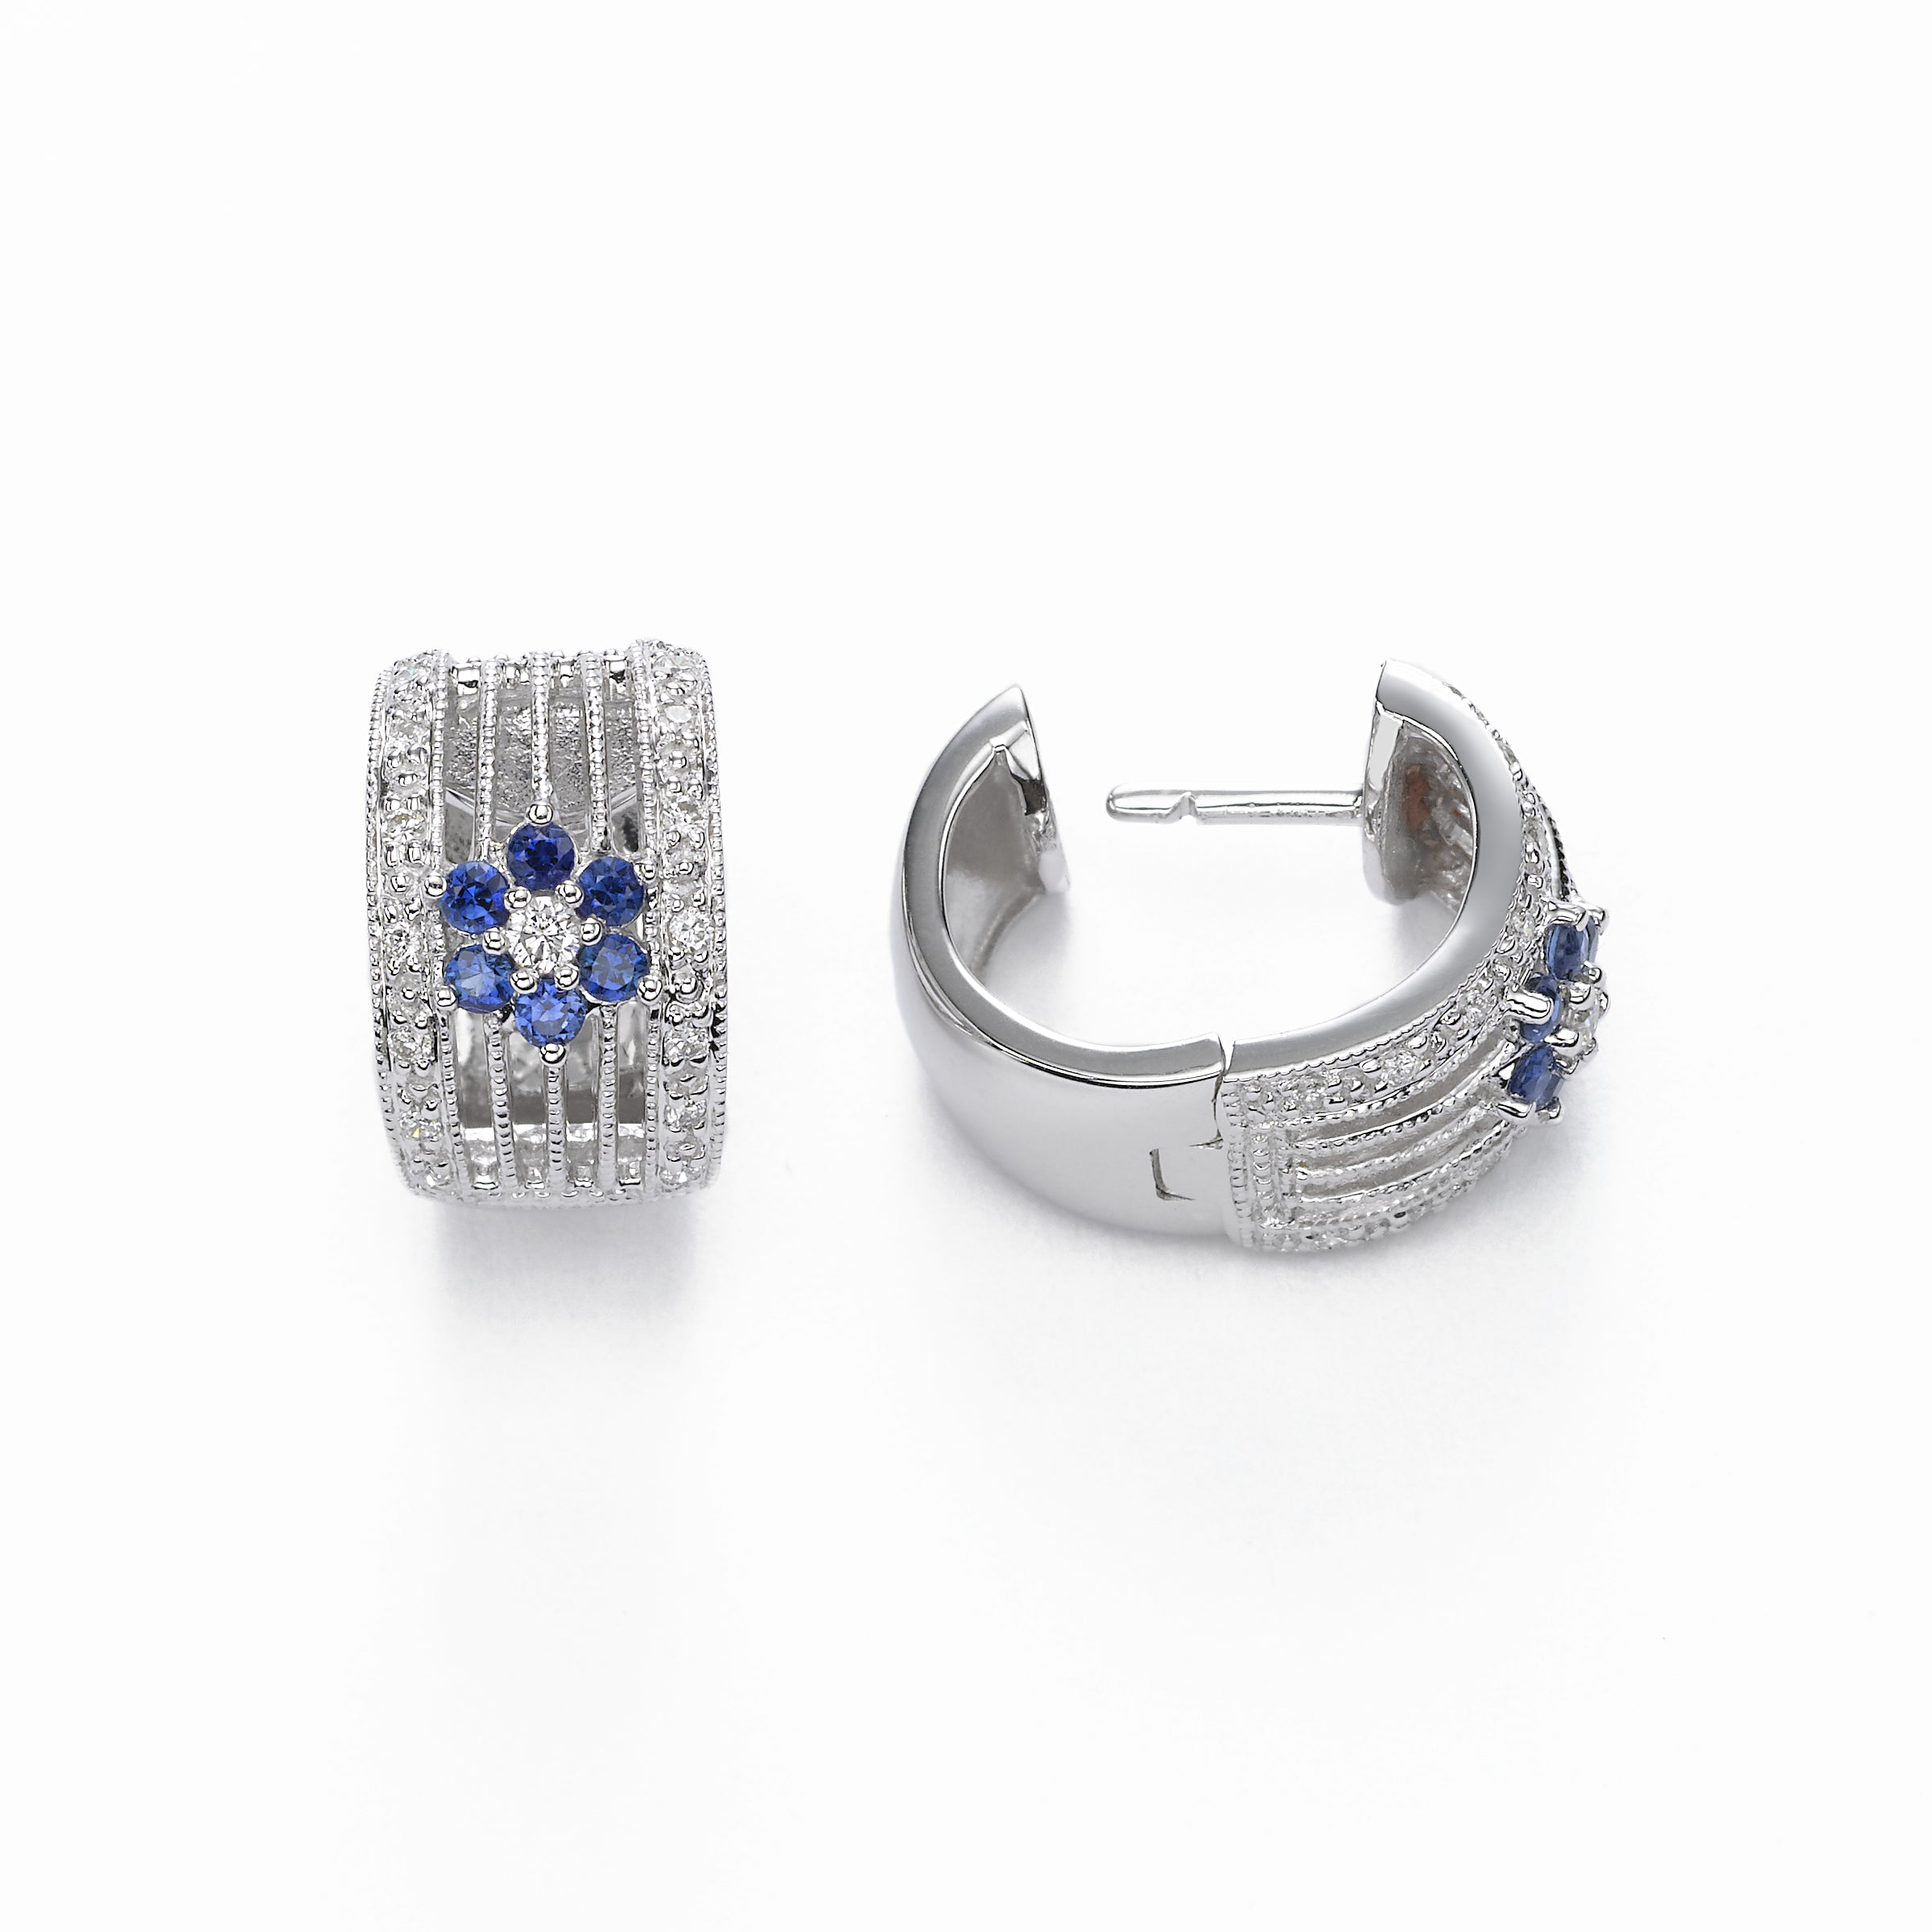 Sapphire and Pave Floral Diamond Hoop Earring, 14K White Gold